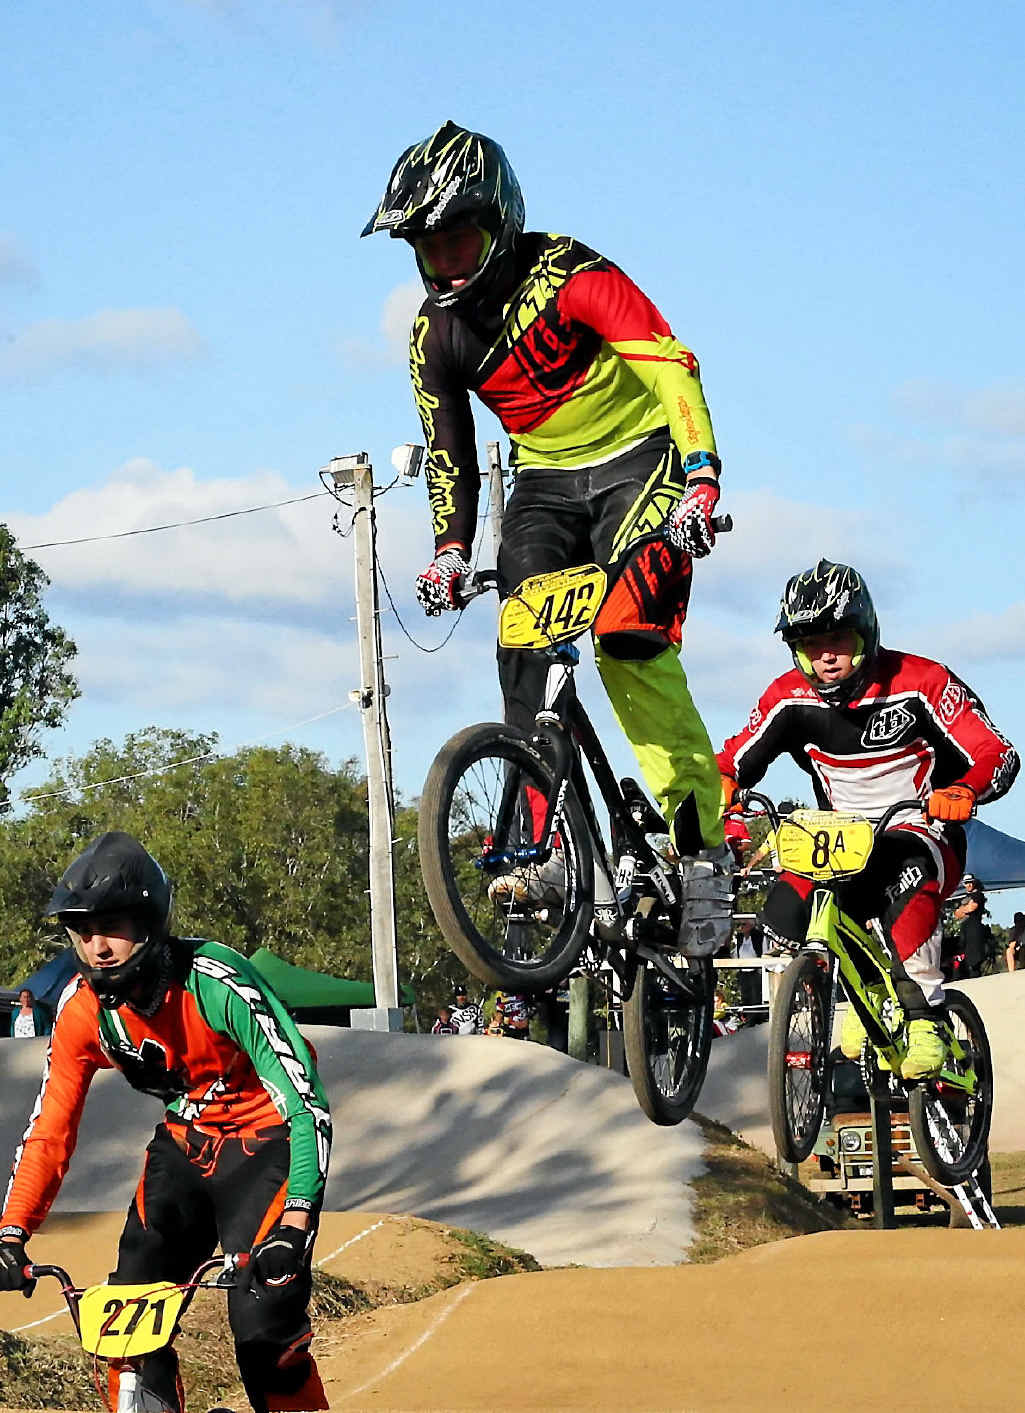 AIR: Ben Spratt gets serious hang time during his races on Saturday. The Maryborough Classic drew more than 400 riders for this year's event.